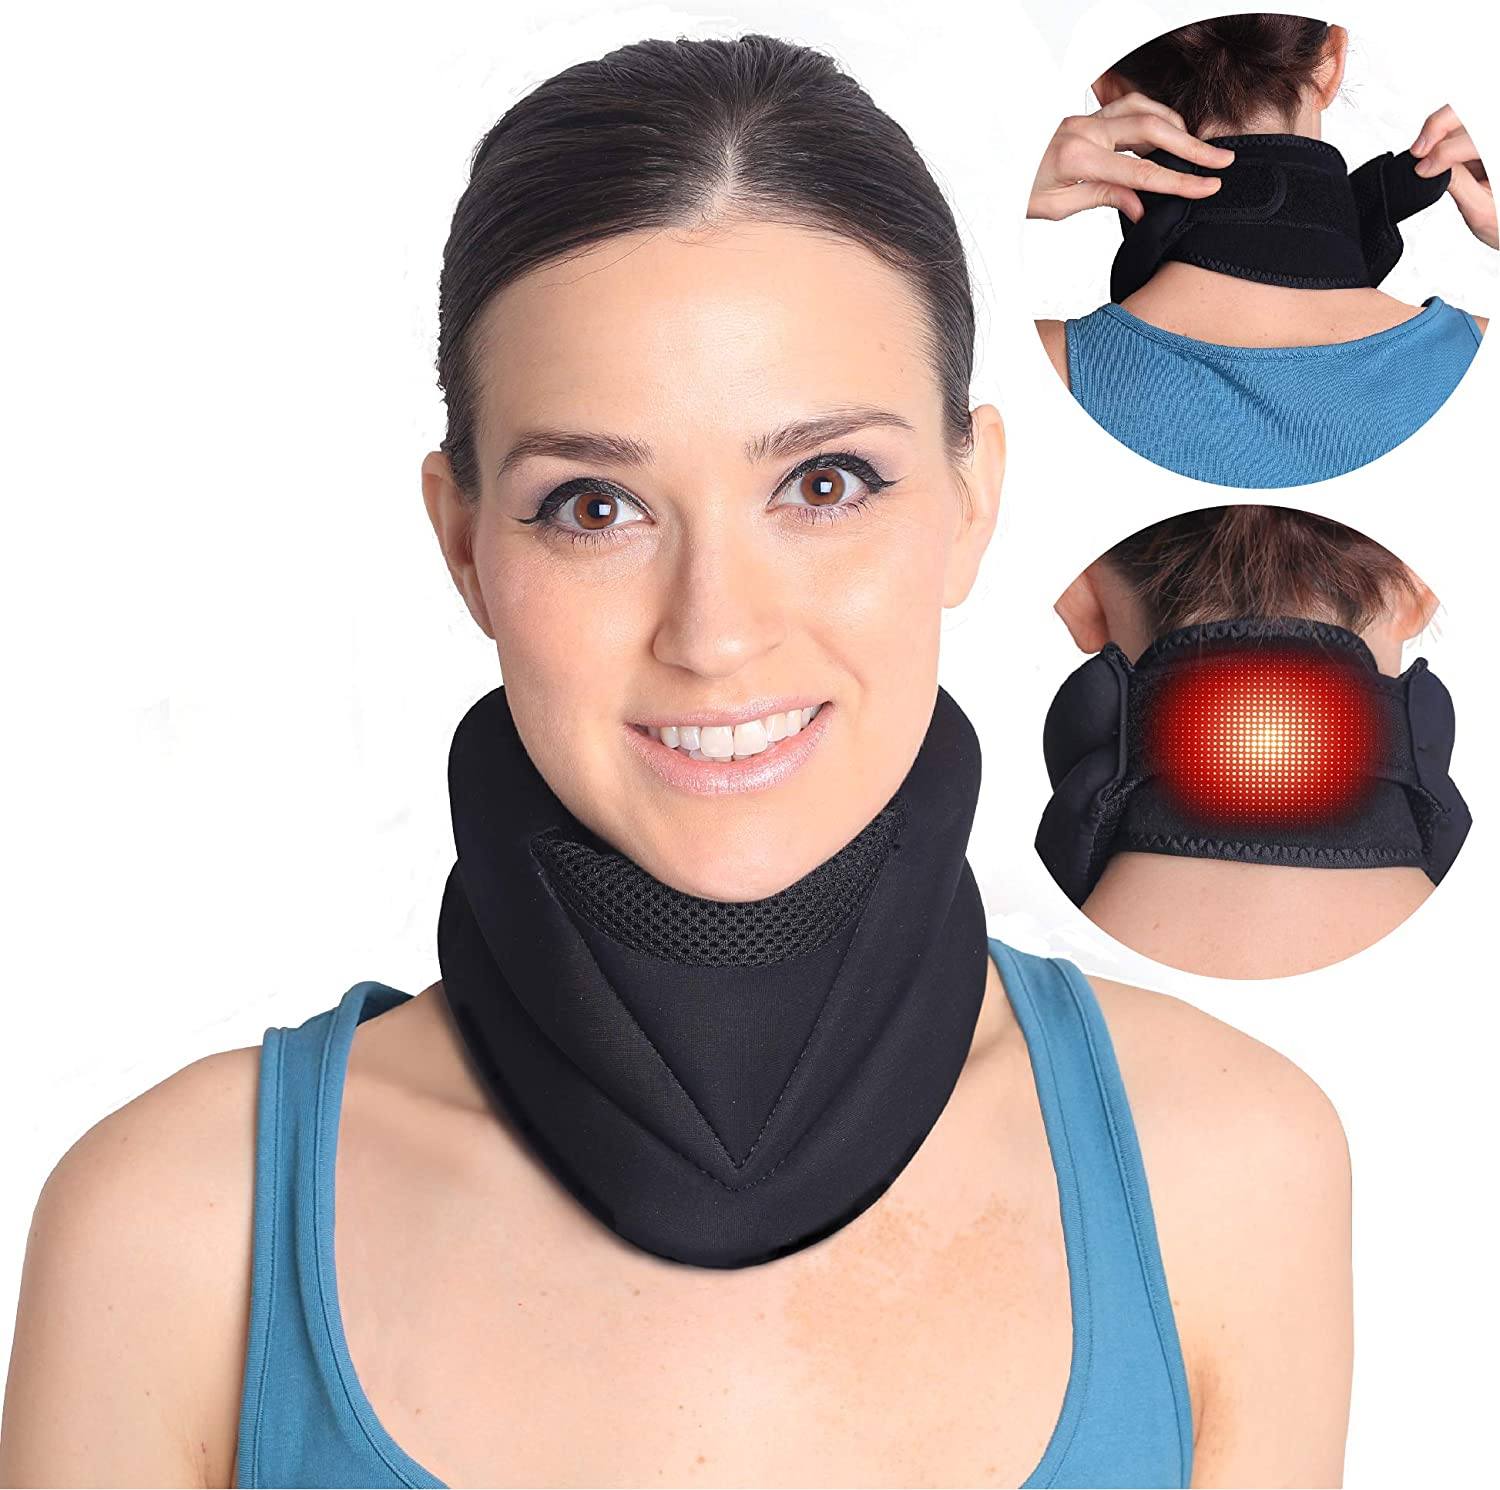 Magnetic Electric Heating Neck Brace for Neck Pain and Support- Cervical Collar Traction Device-Neck Warmer for Stiff Neck- 3 in 1 Support that Relieves Pain, Stress, Anxiety and Headache.